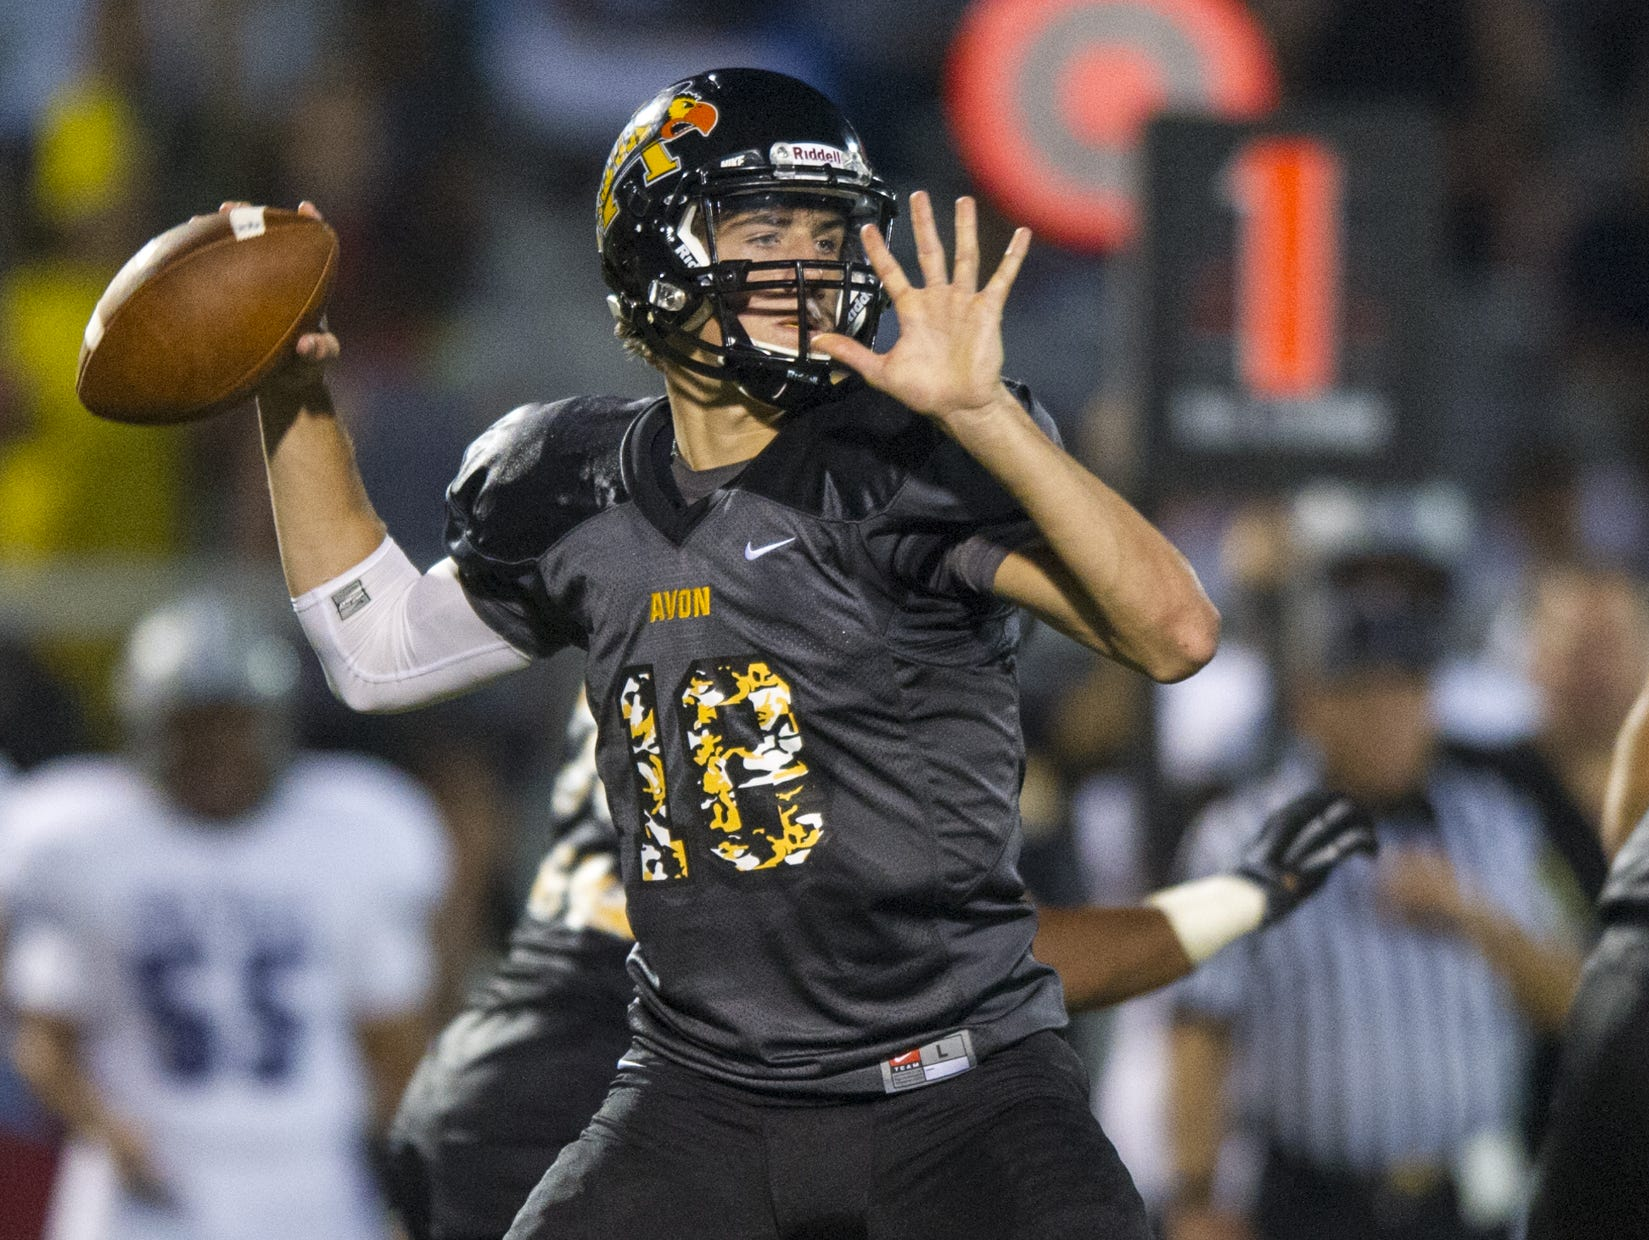 Brandon Peters is on his way to play for Jim Harbaugh and Michigan.